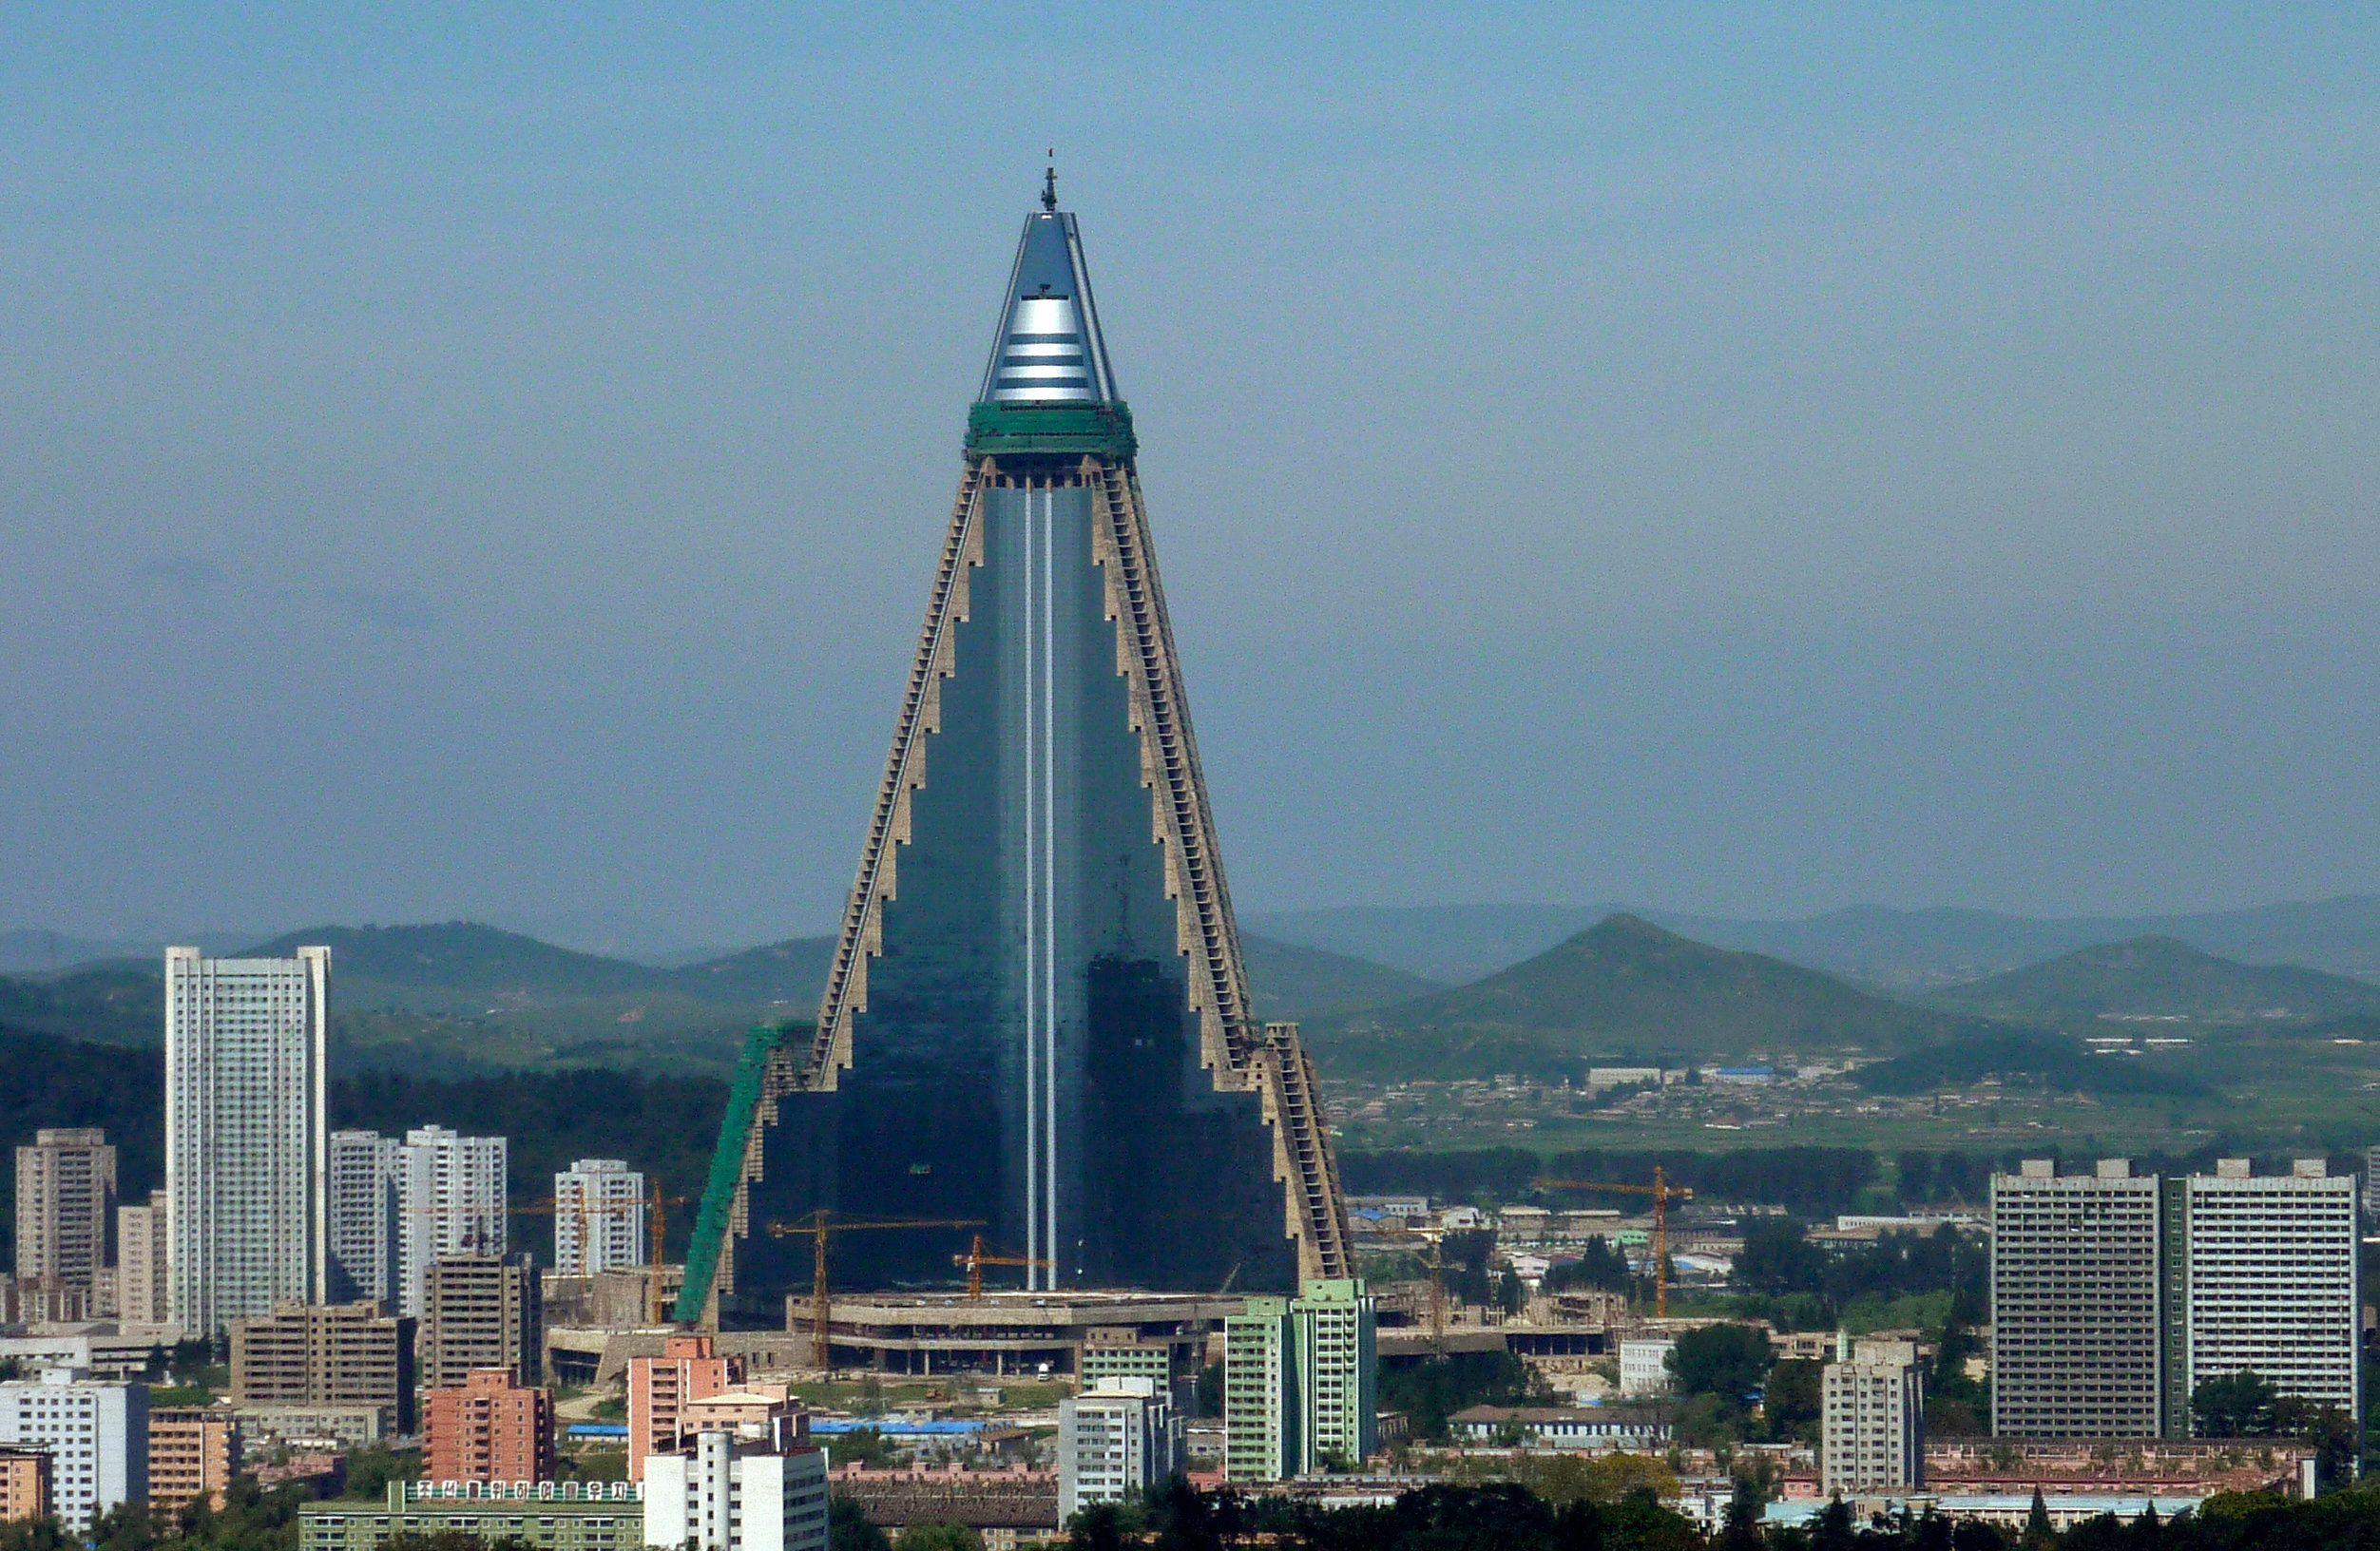 The 105-story Ryugyong Hotel has been abandoned for decades, but a new LED-like addition appears to have...